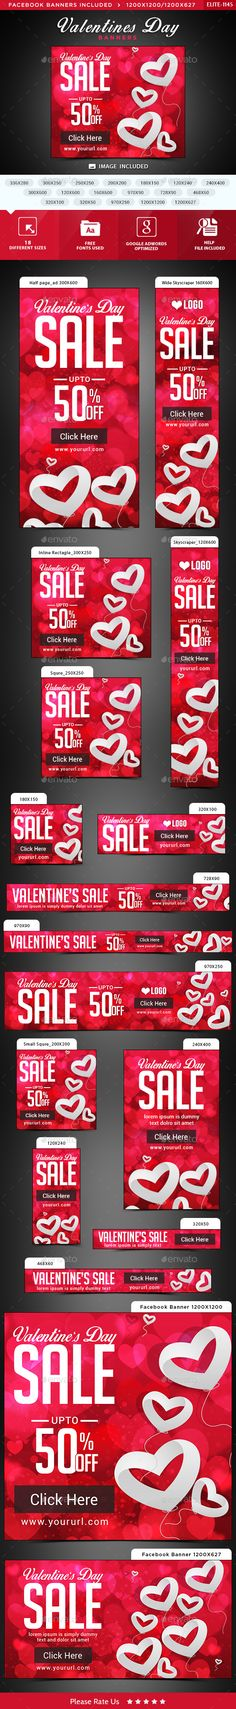 Valentines Day Banners — Photoshop PSD #template #social media • Available here → https://graphicriver.net/item/valentines-day-banners/14752765?ref=pxcr